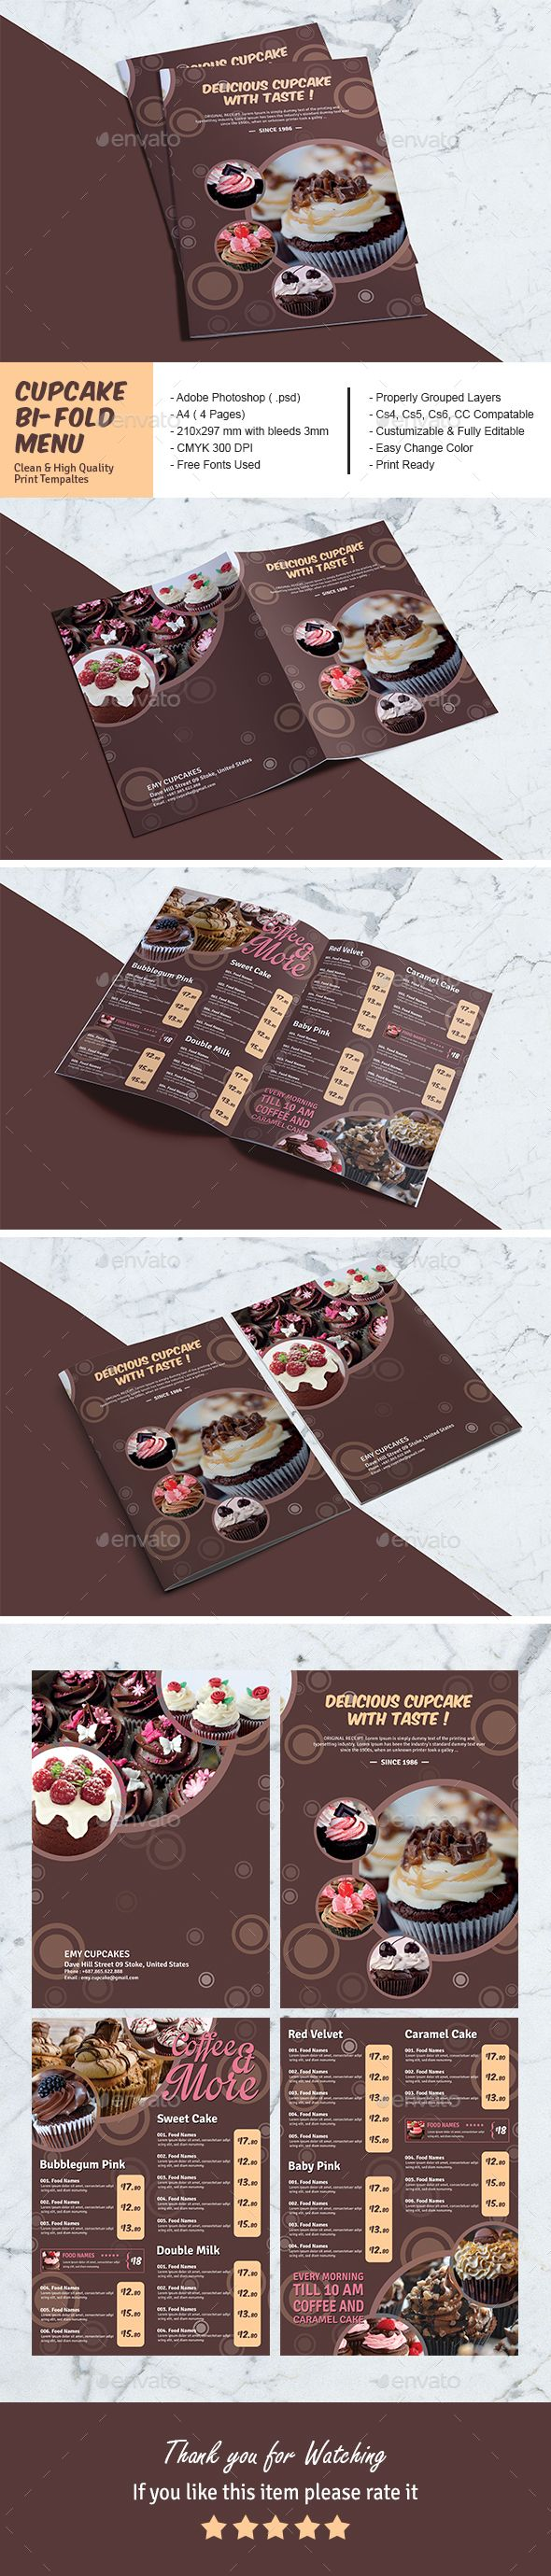 Cupcake BiFold Menu Template — #list #coffee • Download ➝ https://graphicriver.net/item/cupcake-bifold-menu-template/21227306?ref=pxcr